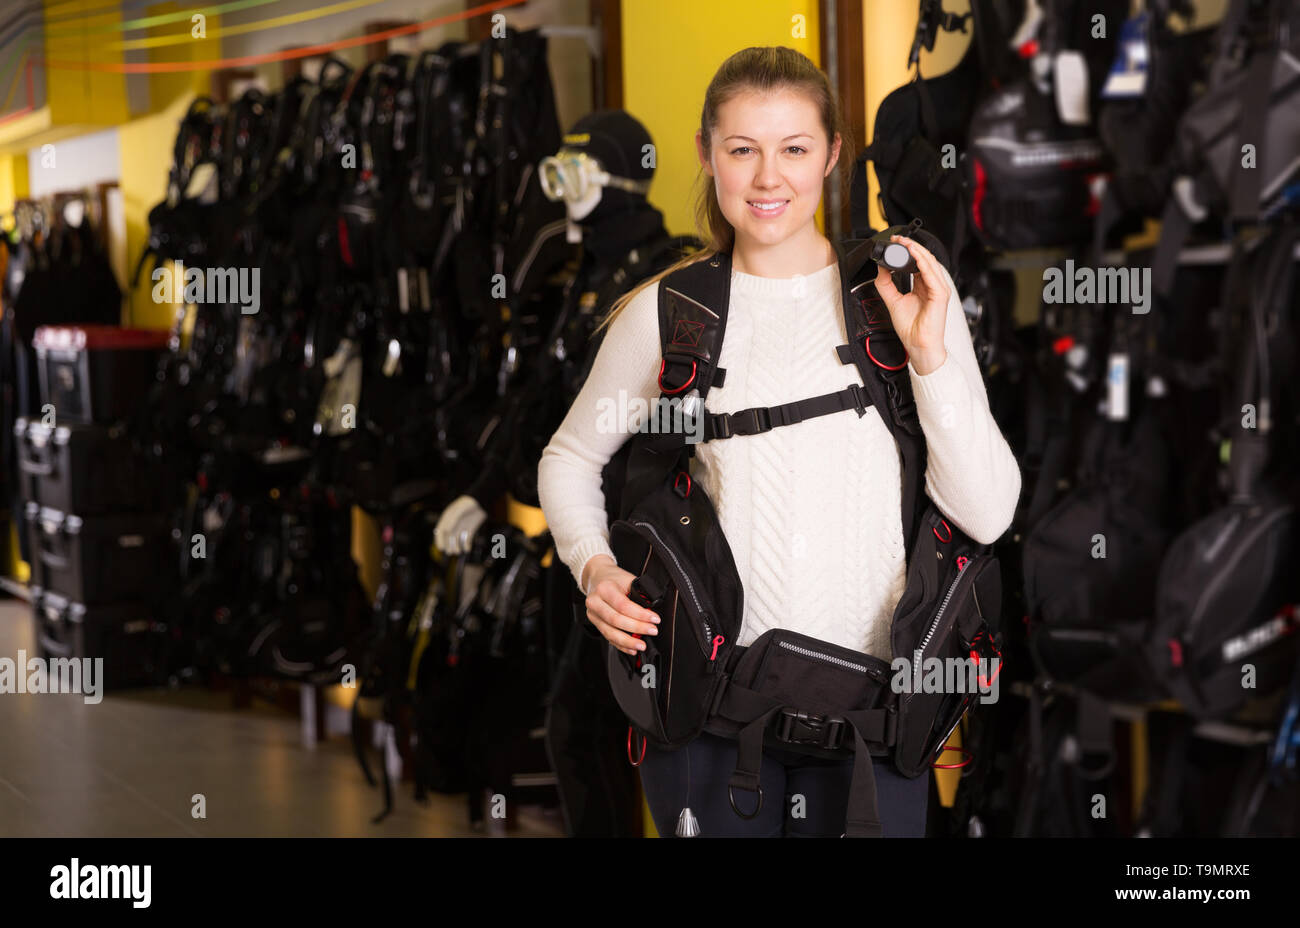 glad adult woman is standing in new equipment for diving in the store. - Stock Image